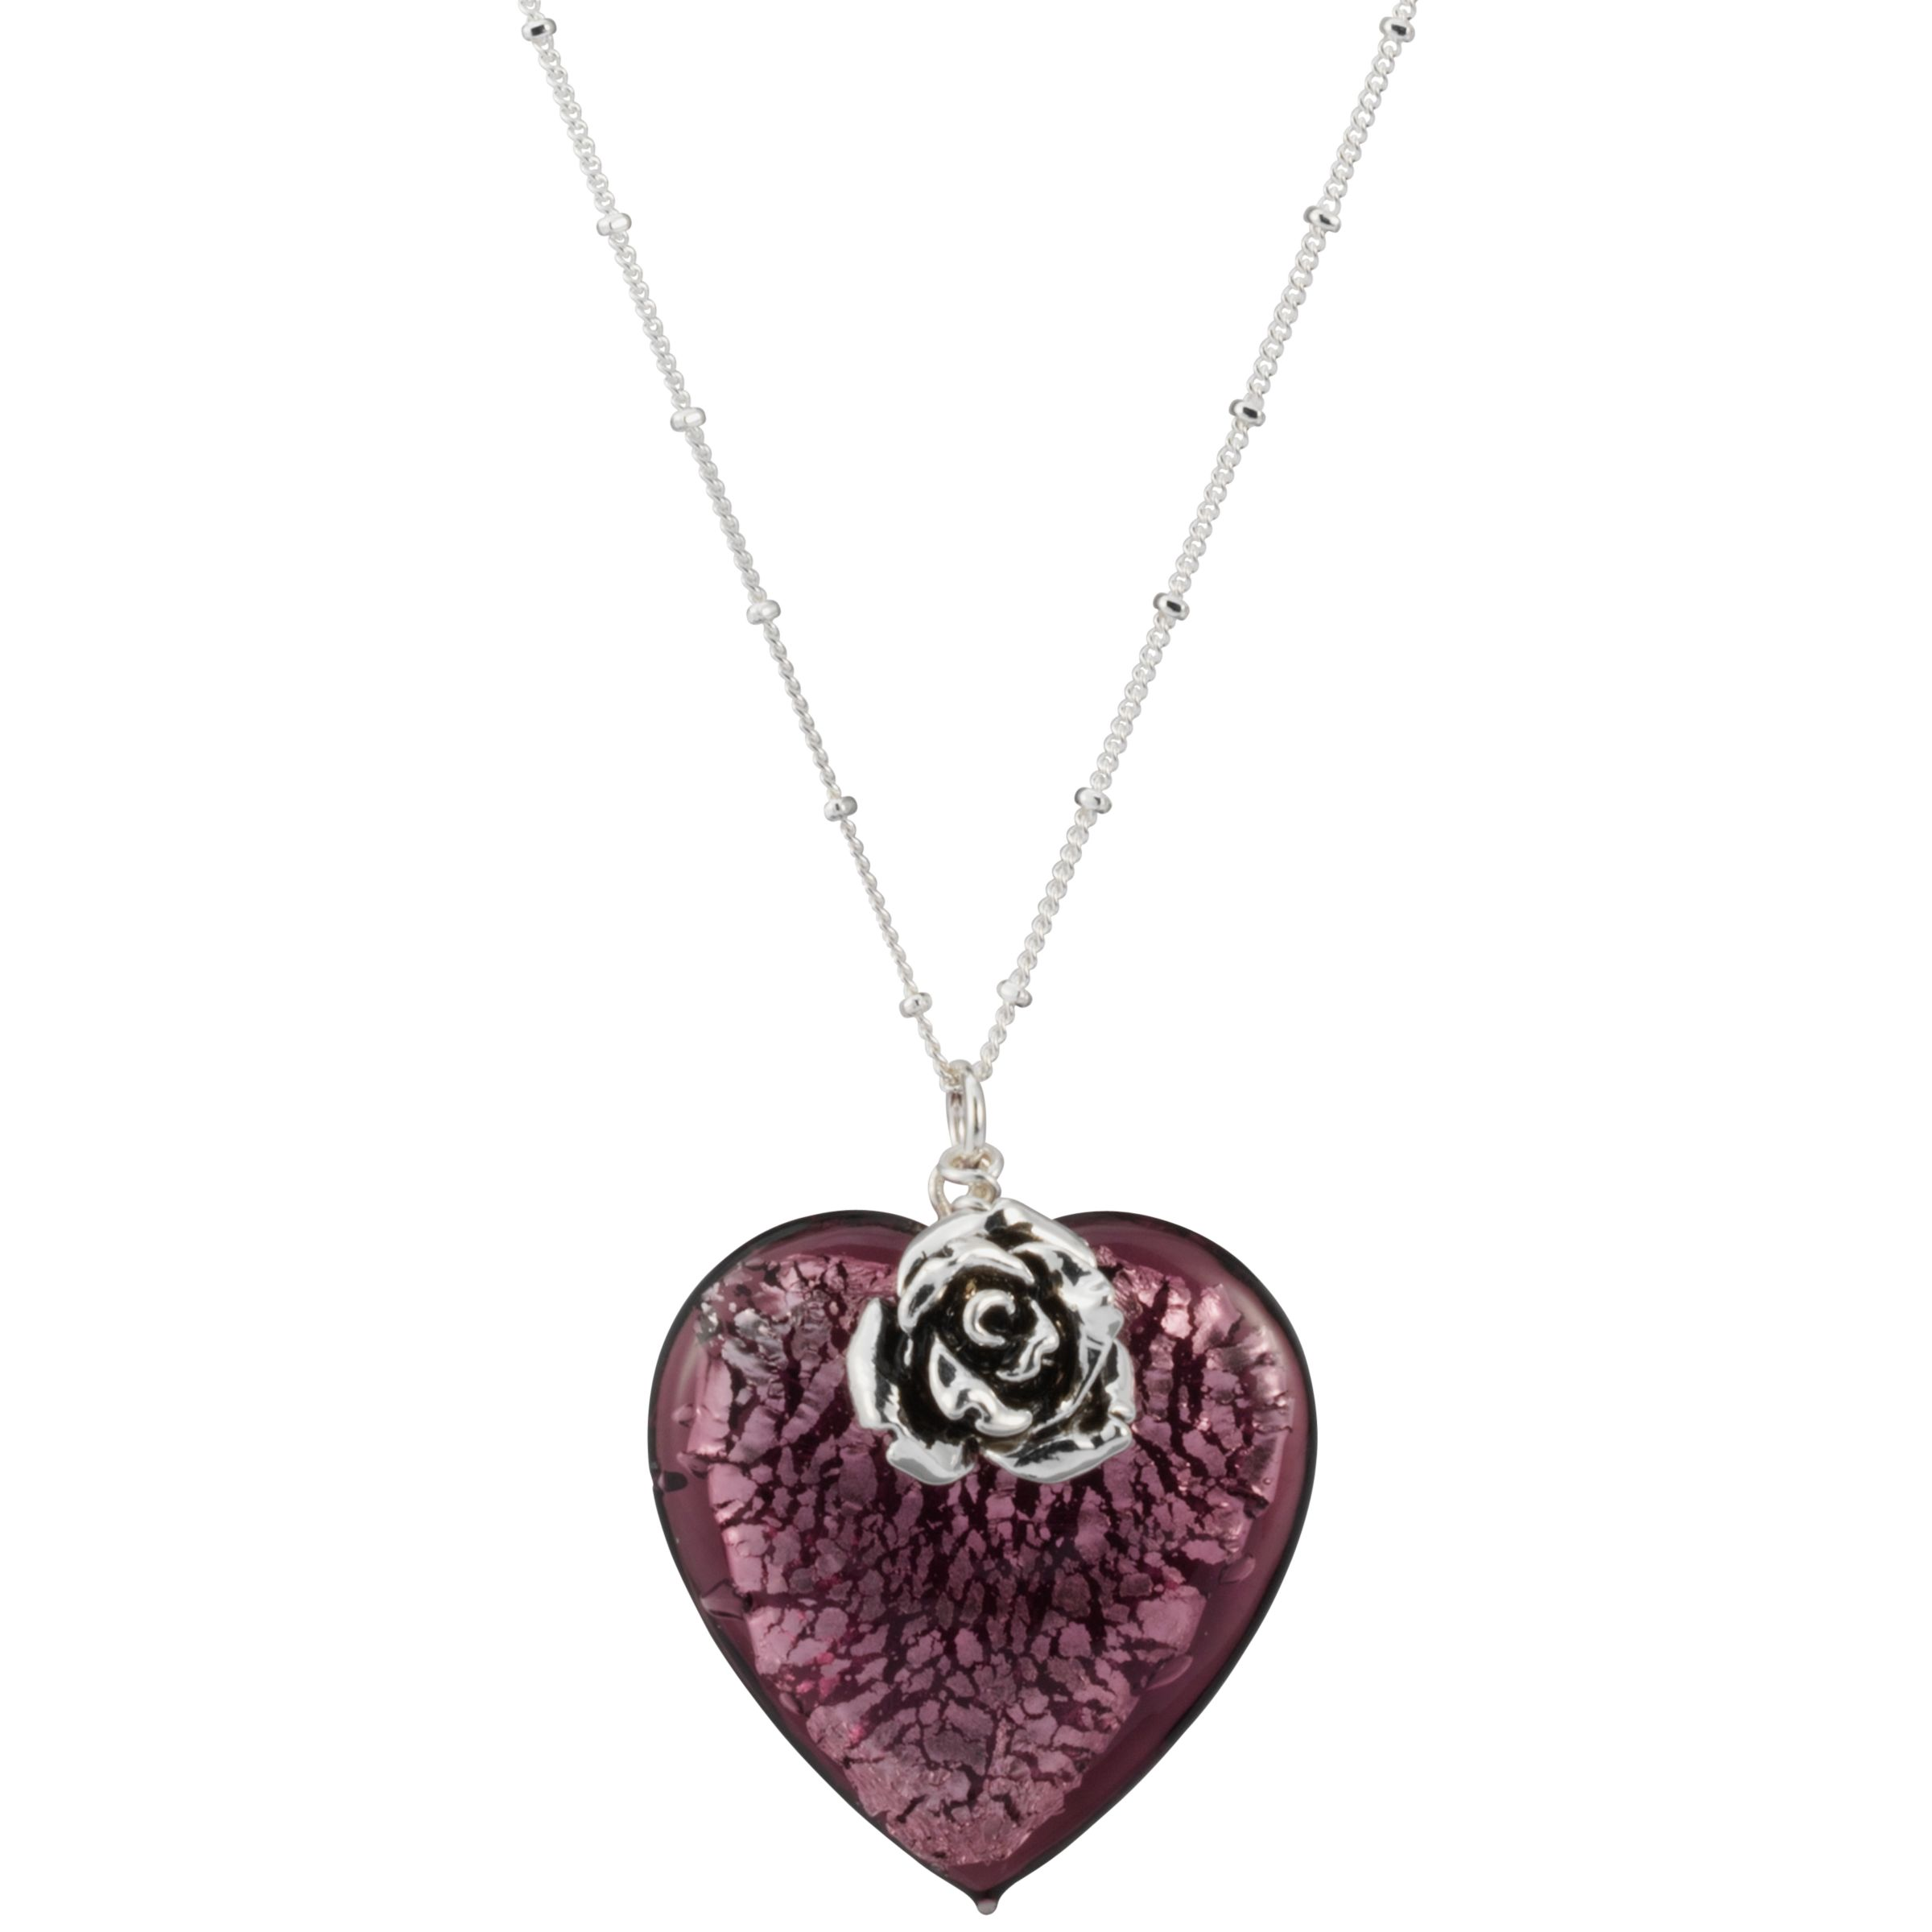 Martick Bohemian Glass Heart Necklace, Blackberry/Rose